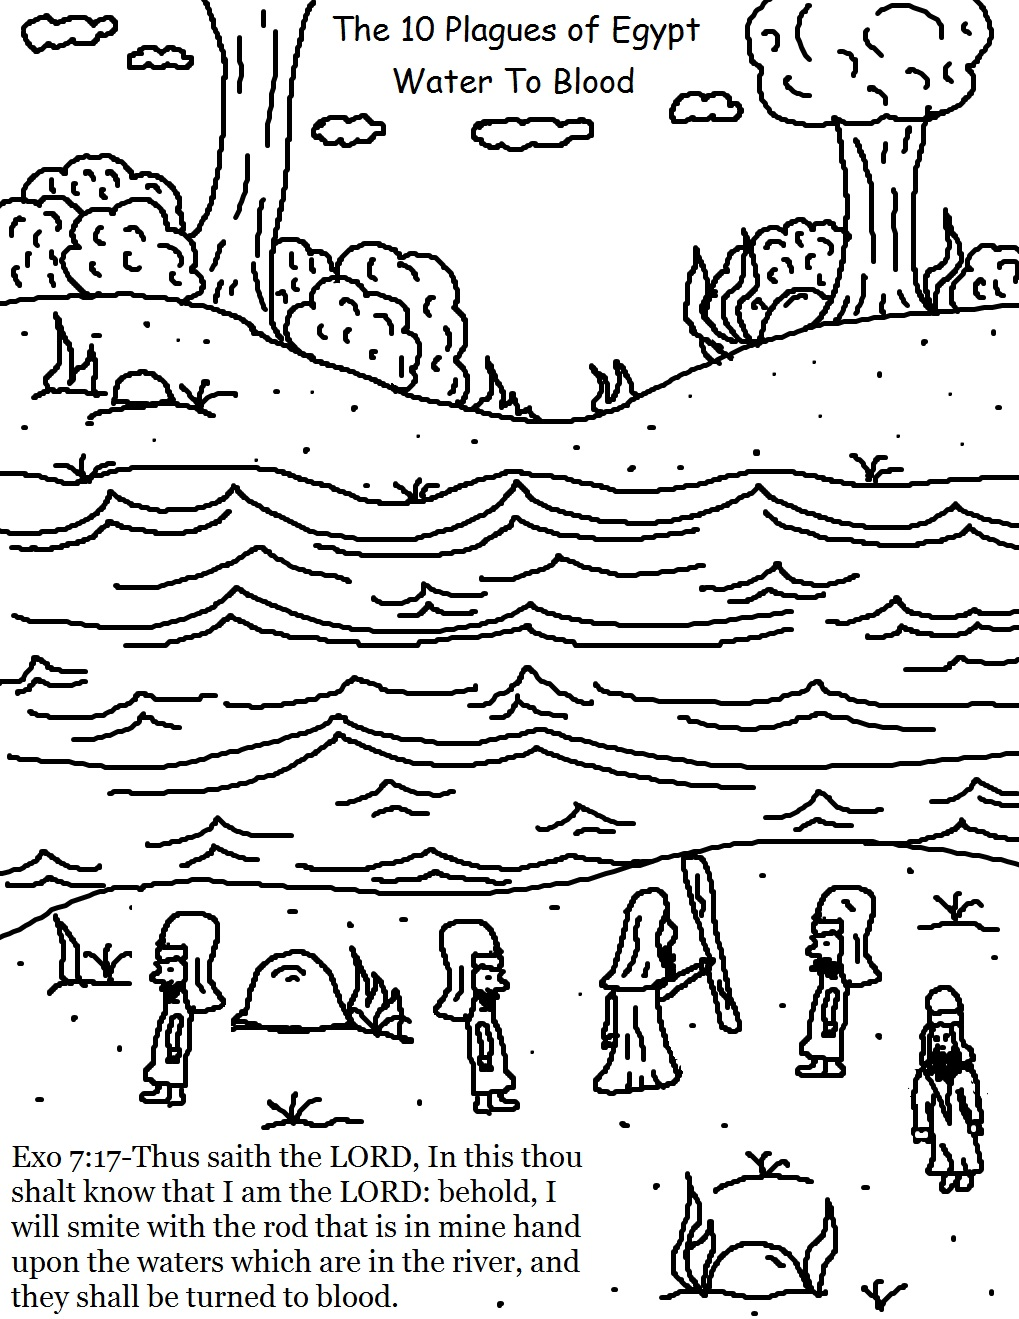 52 FREE Bible Coloring Pages for Kids from Popular Stories | 1319x1019